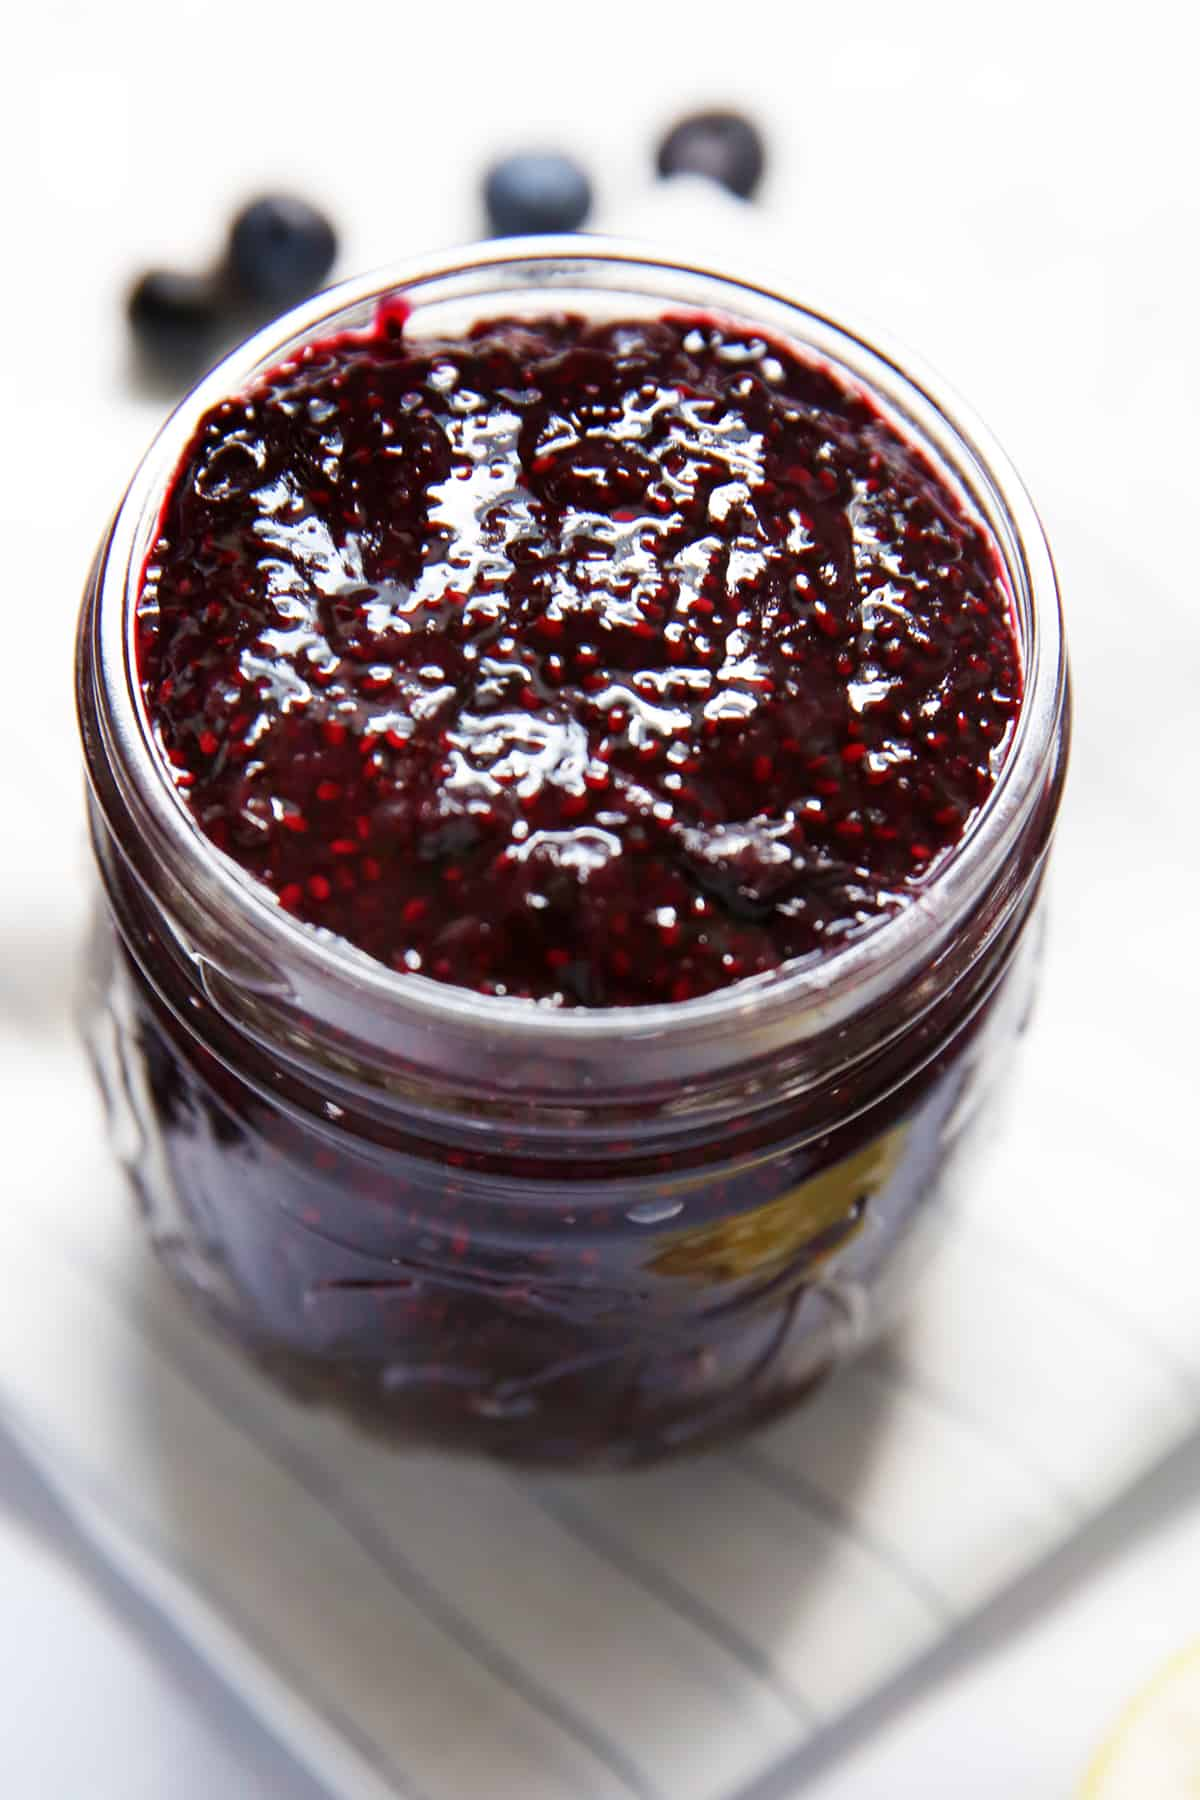 Blueberry jam with chia seeds in a jar